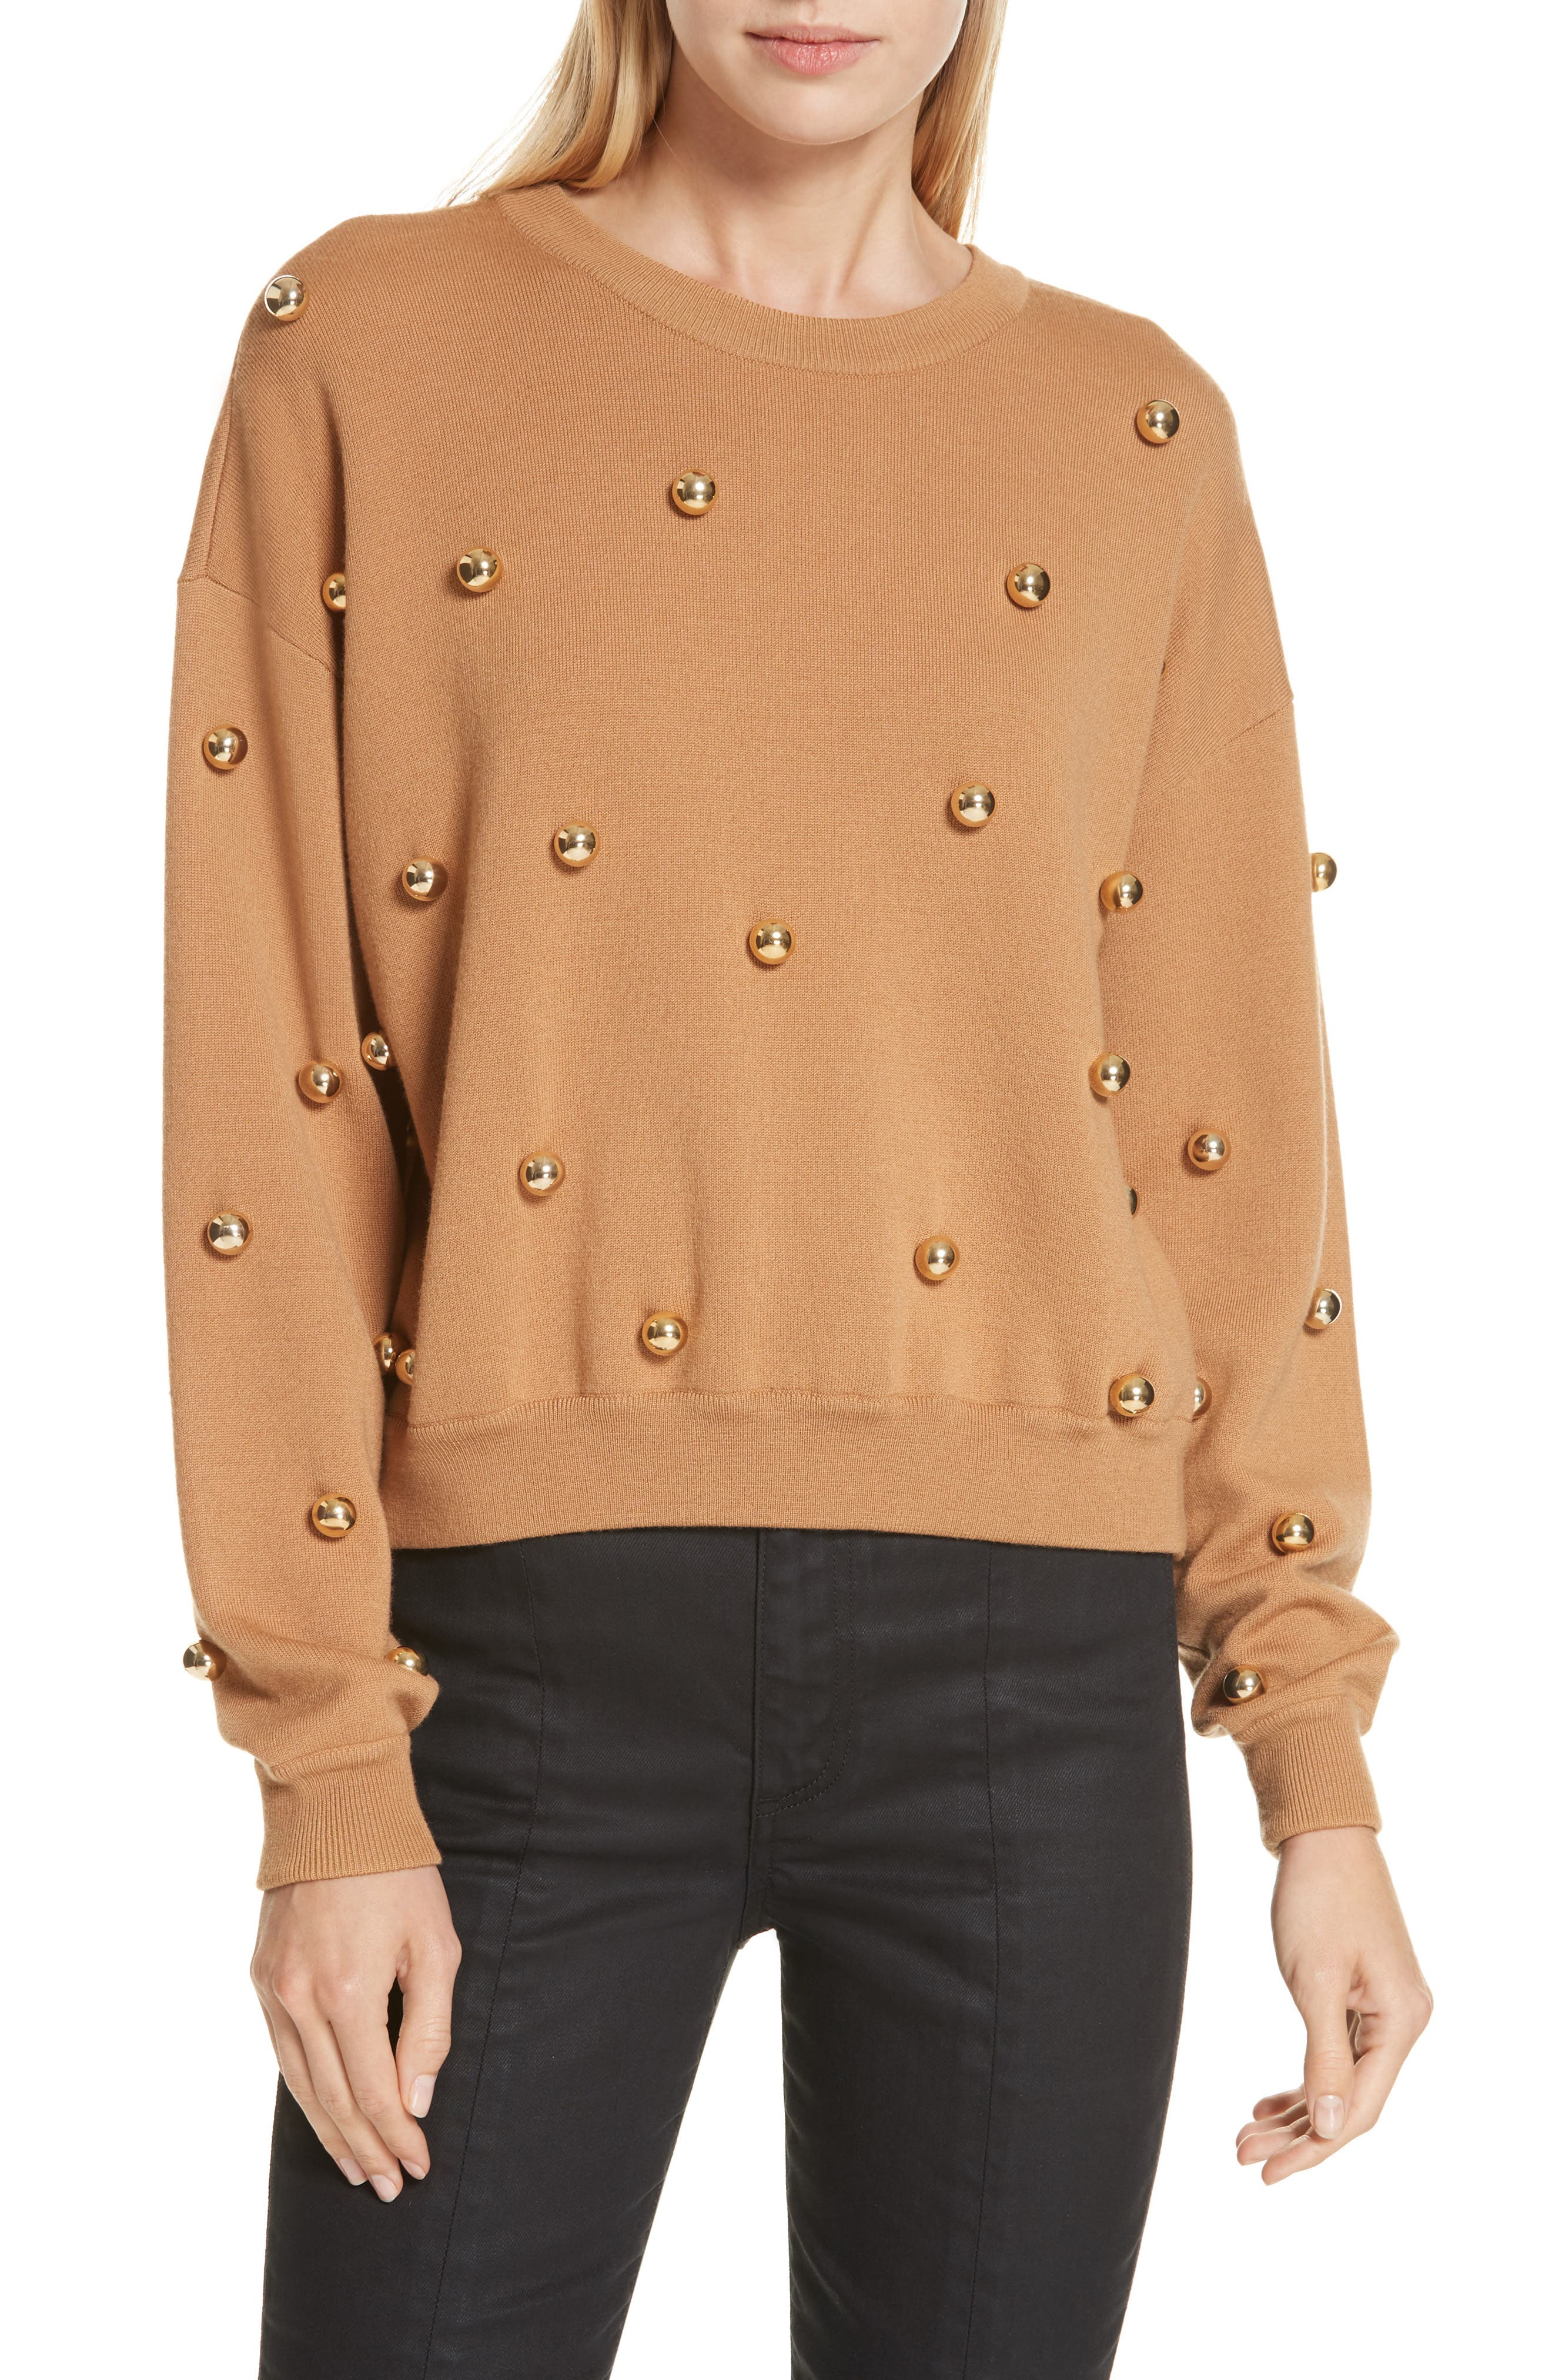 ALICE + OLIVIA Gleeson Metal Ball Detail Wool Blend Sweater, Main, color, 200